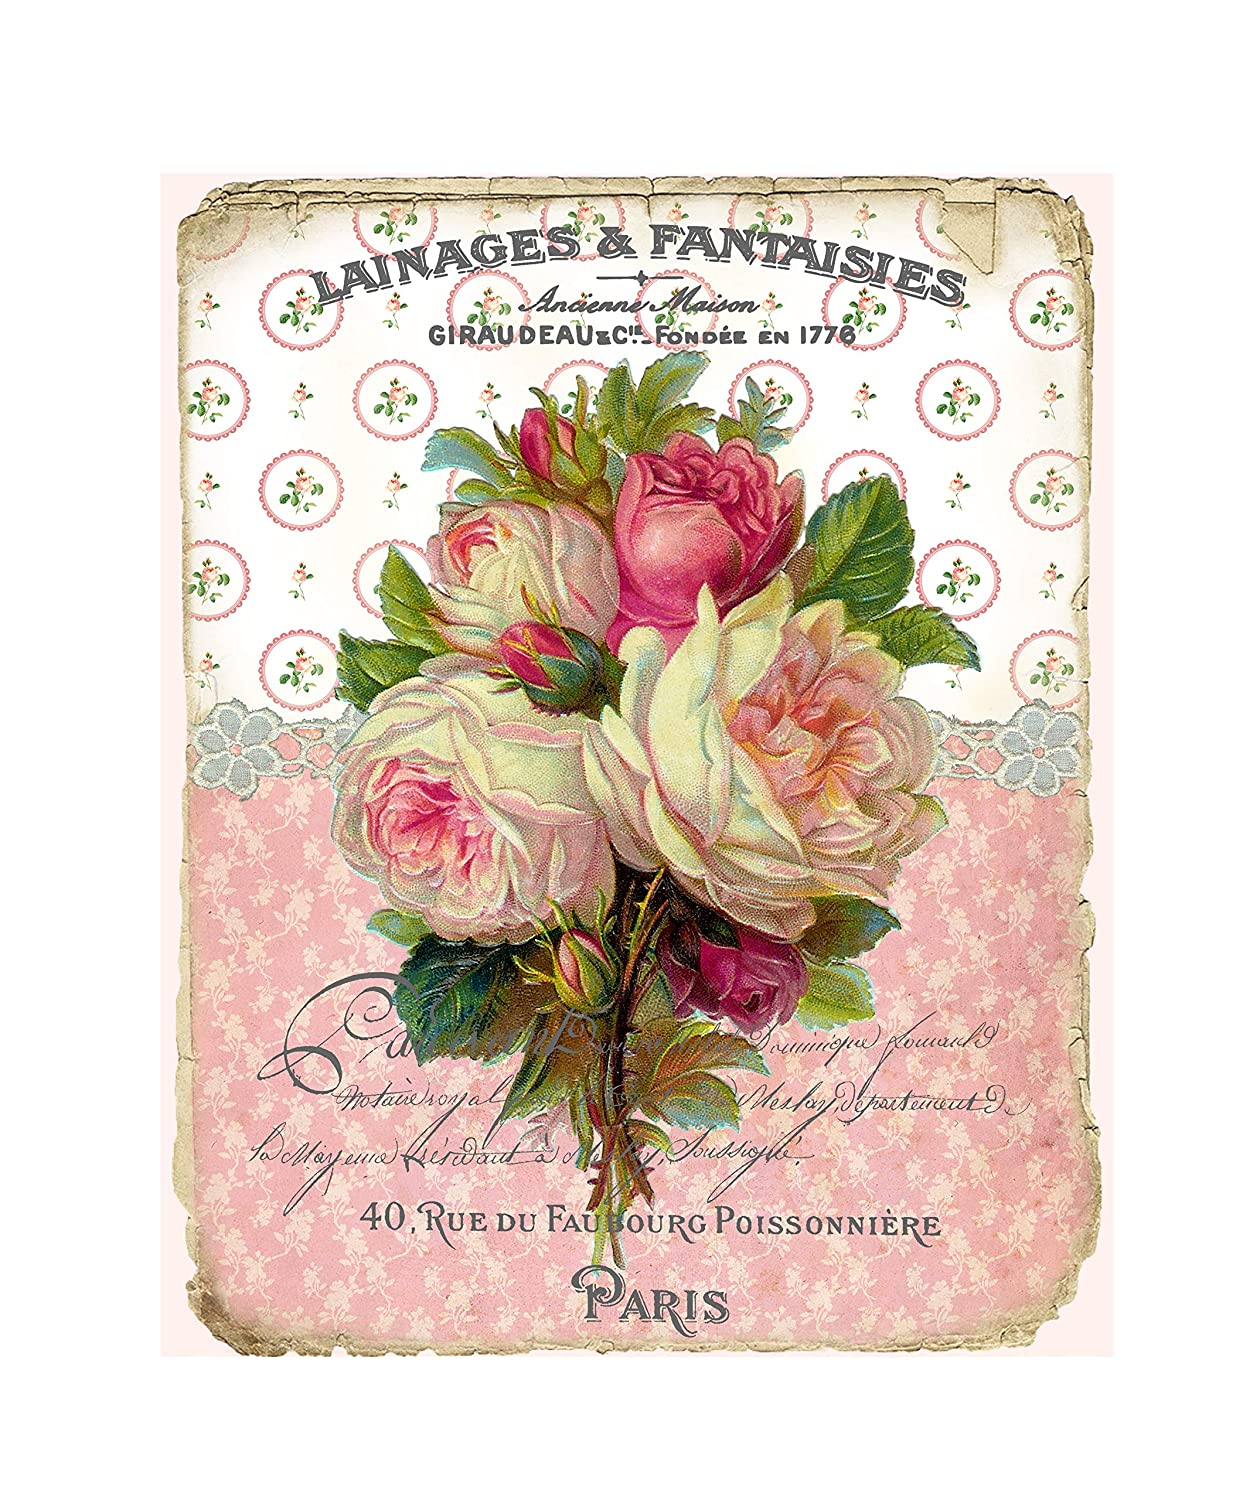 16 x 20 French Discount Great interest is also underway Roses Art Print Canvas Wall